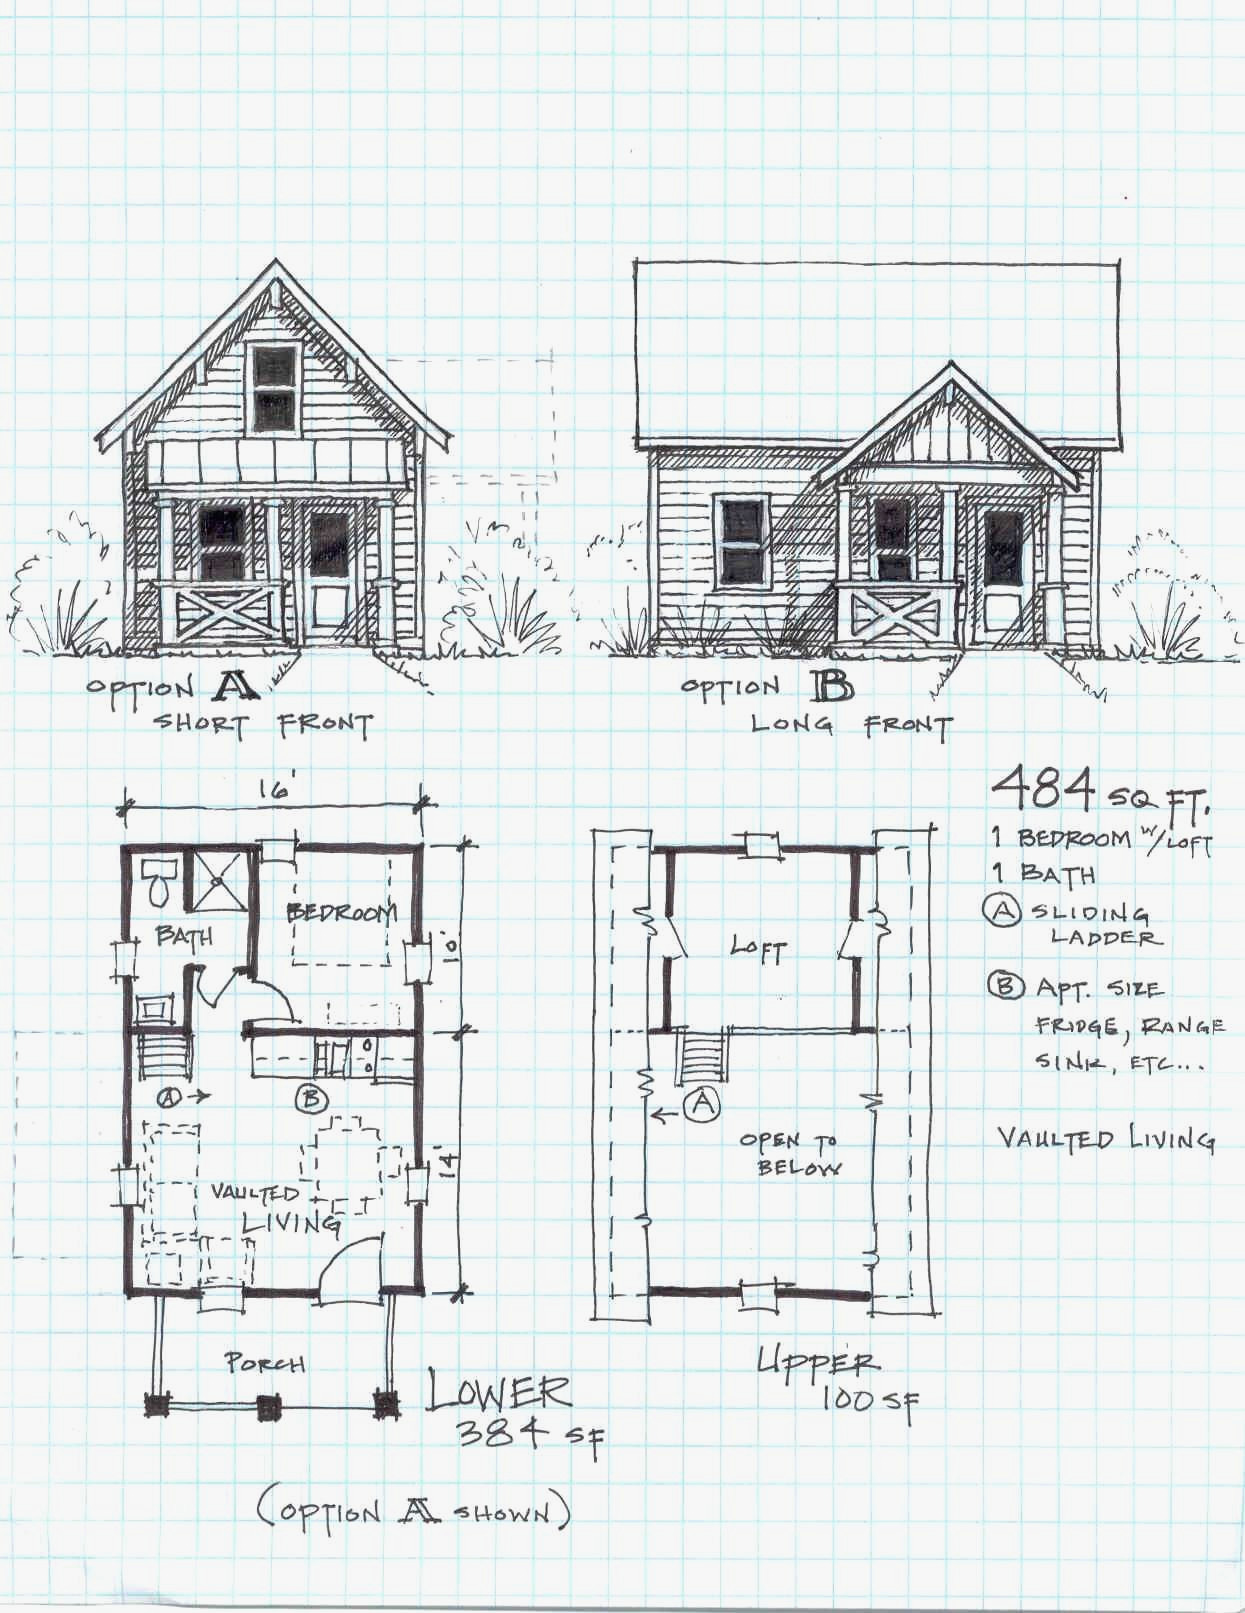 deer shooting house design fresh the lennon house plan elegant deer shooting house design of deer shooting house design